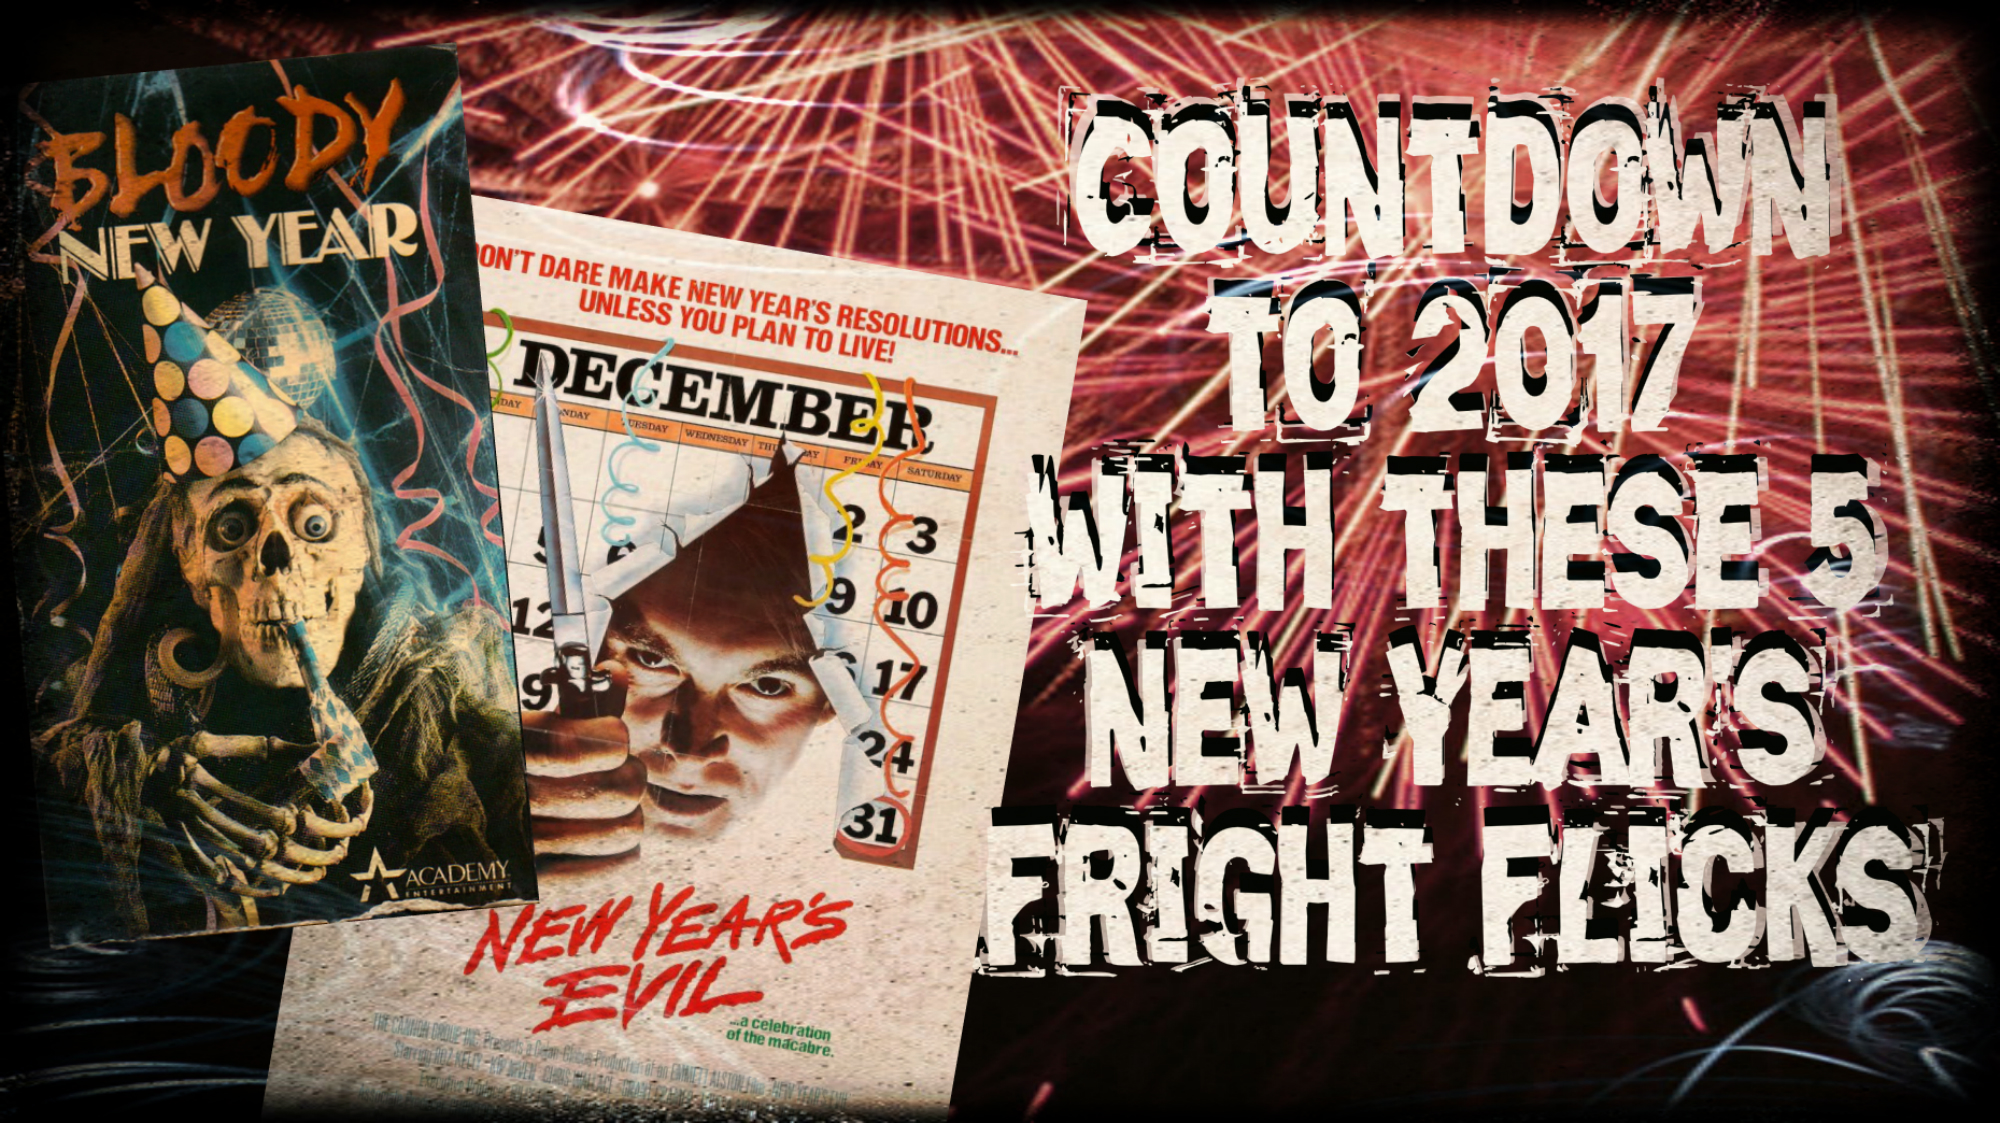 New Year's Frights